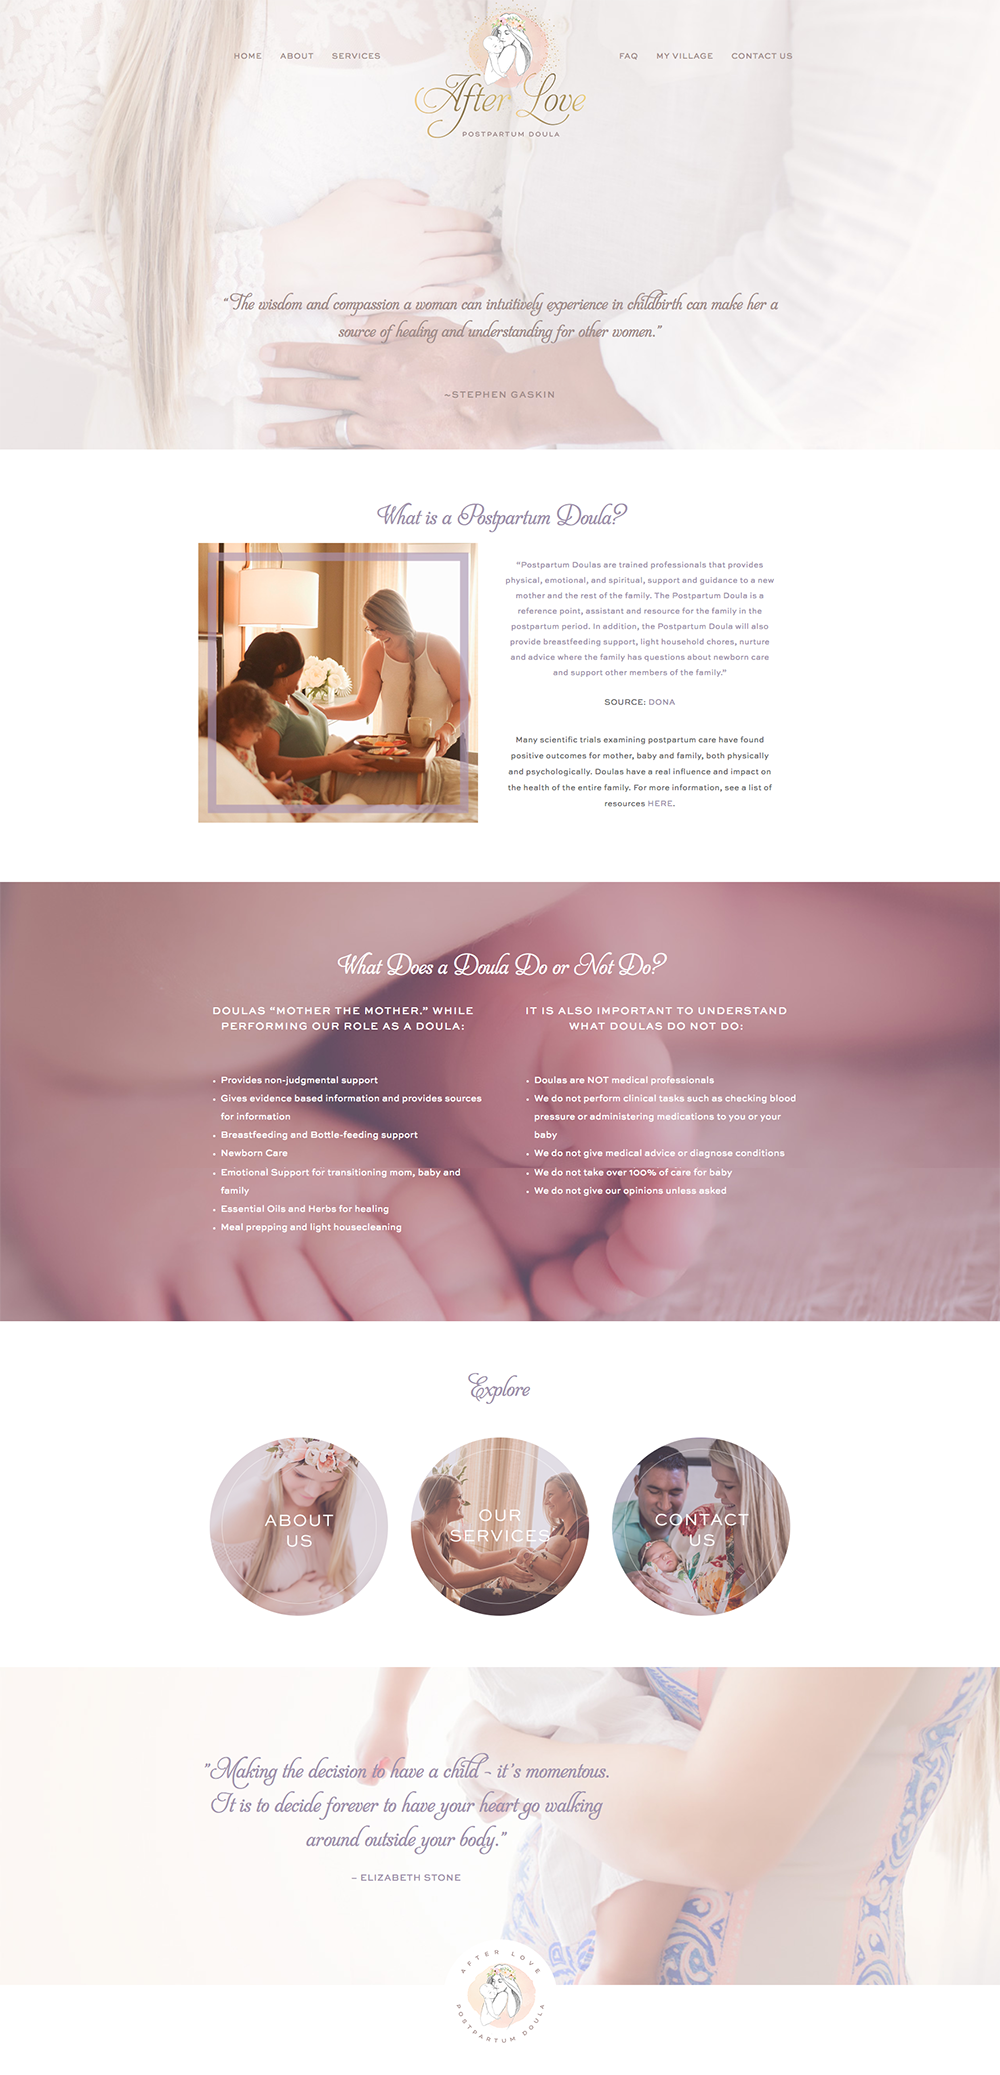 homepage screenshot of AfterLoveDoula.com, designed by Fancy Girl Design Studio